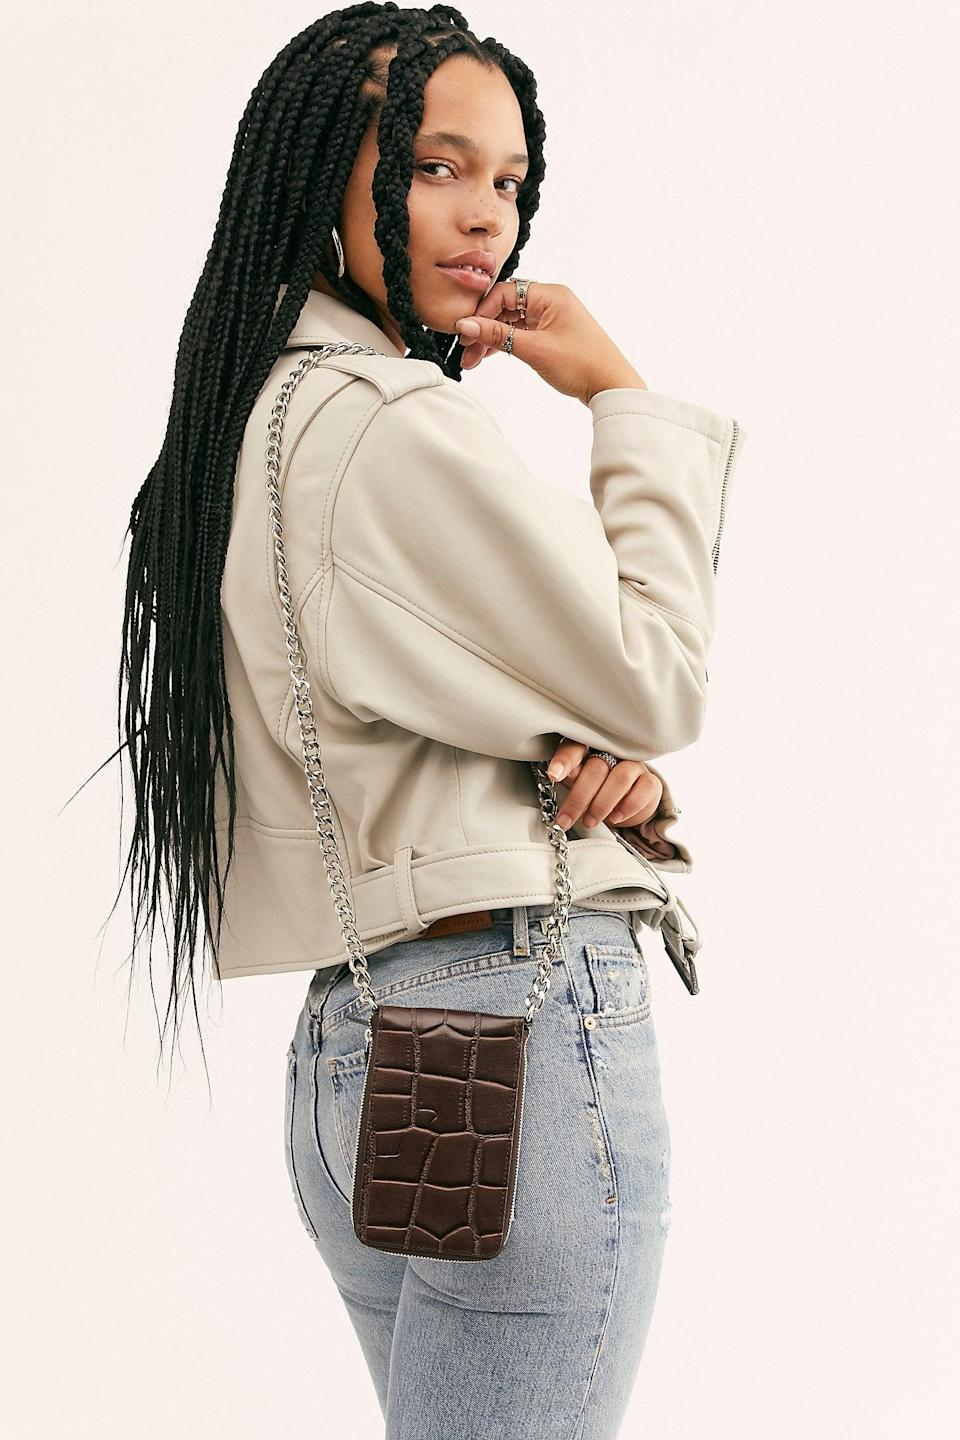 """<p>They can rock this <a href=""""https://www.popsugar.com/buy/All-Night-Chunky-Chain-Wallet-527144?p_name=All%20Night%20Chunky%20Chain%20Wallet&retailer=freepeople.com&pid=527144&price=30&evar1=fab%3Aus&evar9=45460327&evar98=https%3A%2F%2Fwww.popsugar.com%2Ffashion%2Fphoto-gallery%2F45460327%2Fimage%2F46977994%2FAll-Night-Chunky-Chain-Wallet&list1=shopping%2Cgifts%2Cfree%20people%2Choliday%2Cgift%20guide%2Cgifts%20for%20women&prop13=api&pdata=1"""" class=""""link rapid-noclick-resp"""" rel=""""nofollow noopener"""" target=""""_blank"""" data-ylk=""""slk:All Night Chunky Chain Wallet"""">All Night Chunky Chain Wallet</a> ($30) on a night out.</p>"""